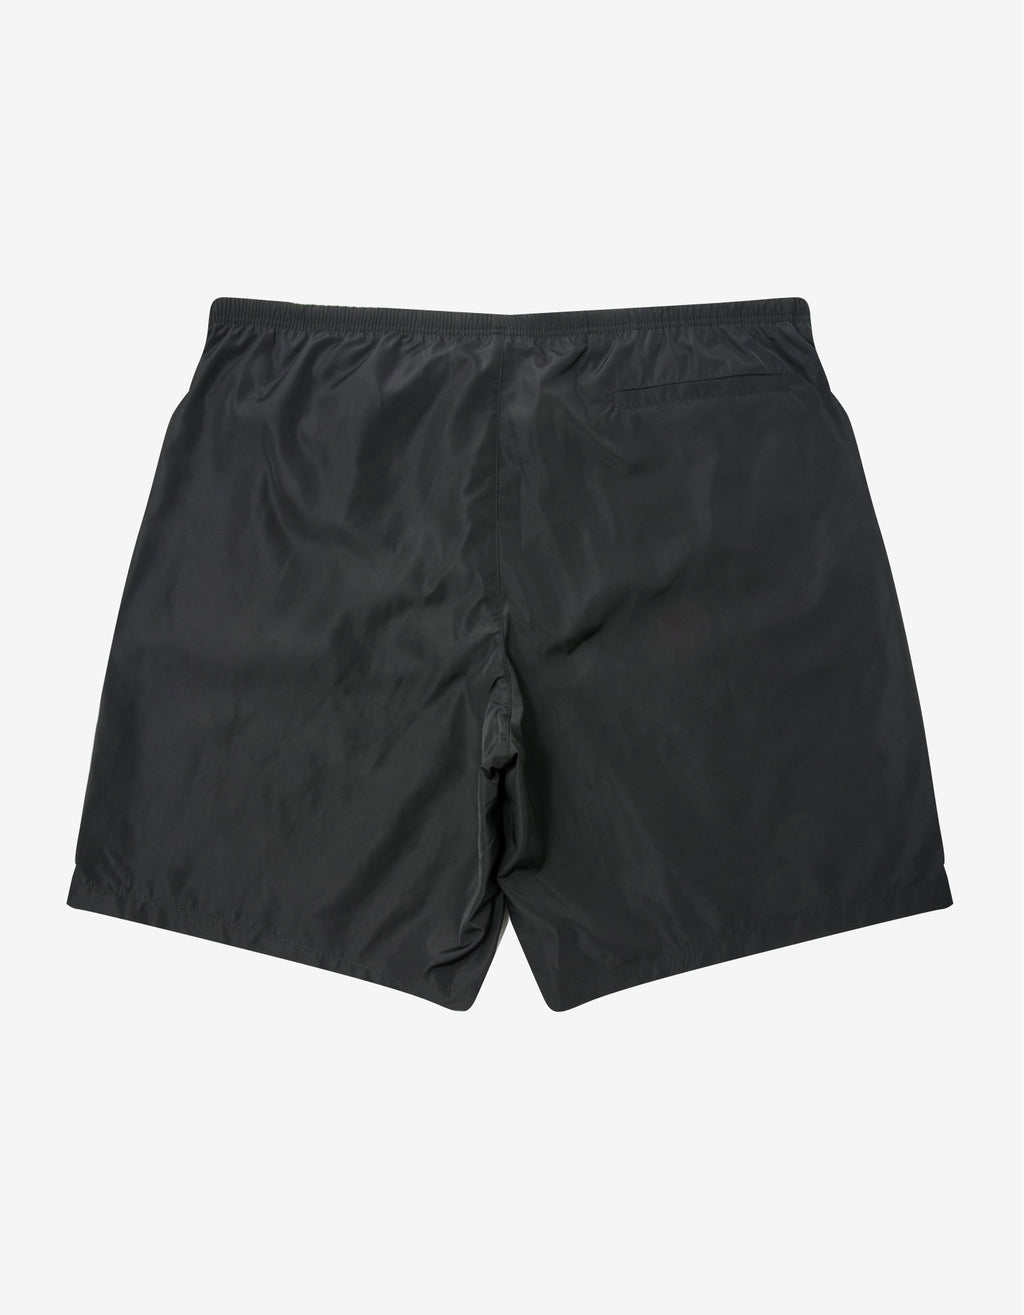 Black Curved Logo Swim Shorts